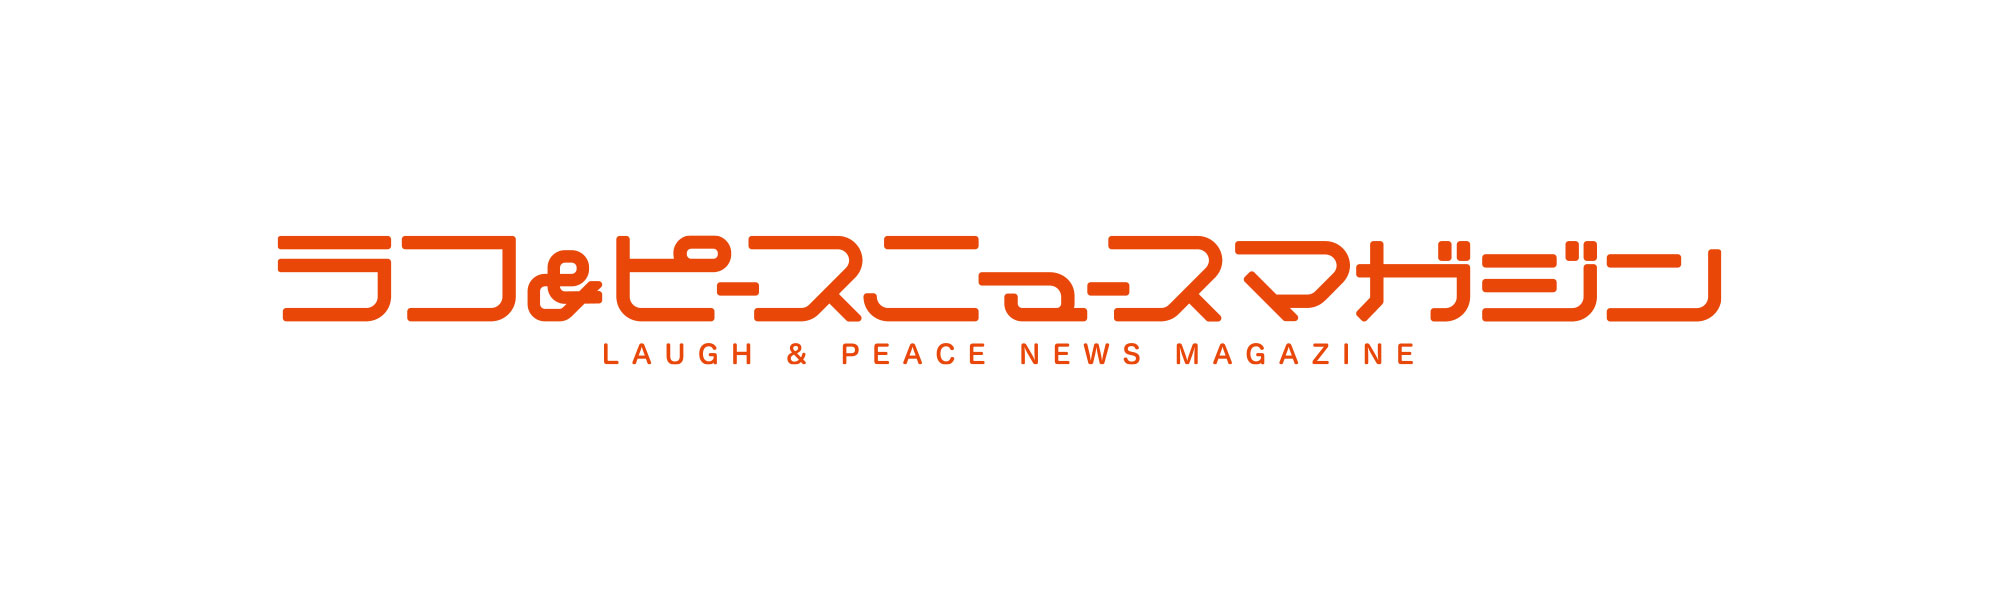 laugh_and_peace_news_magazine_logo_001